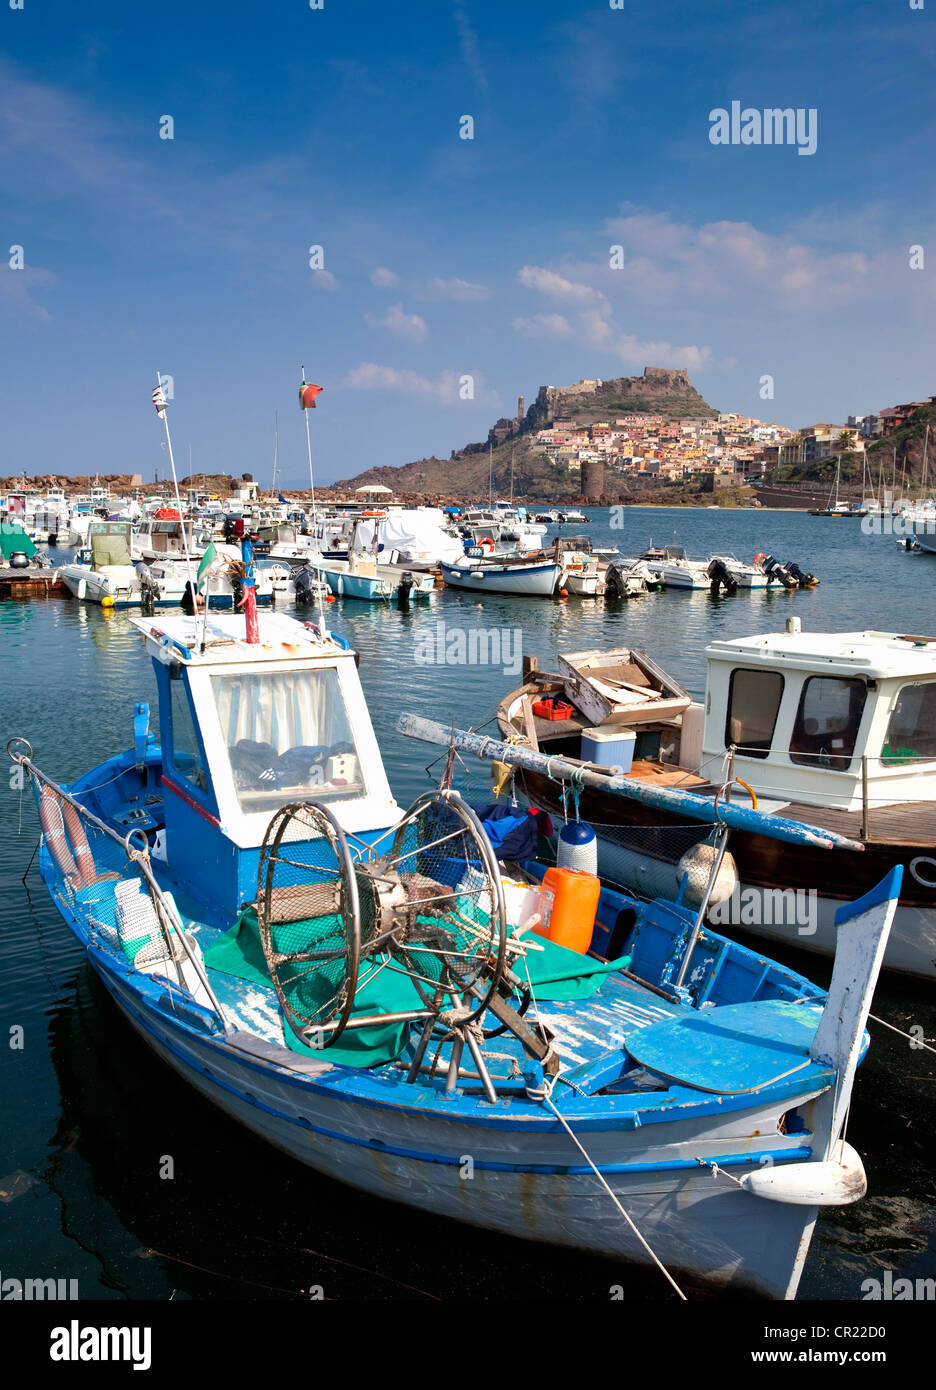 Fishing boats docked in pier - Stock Image